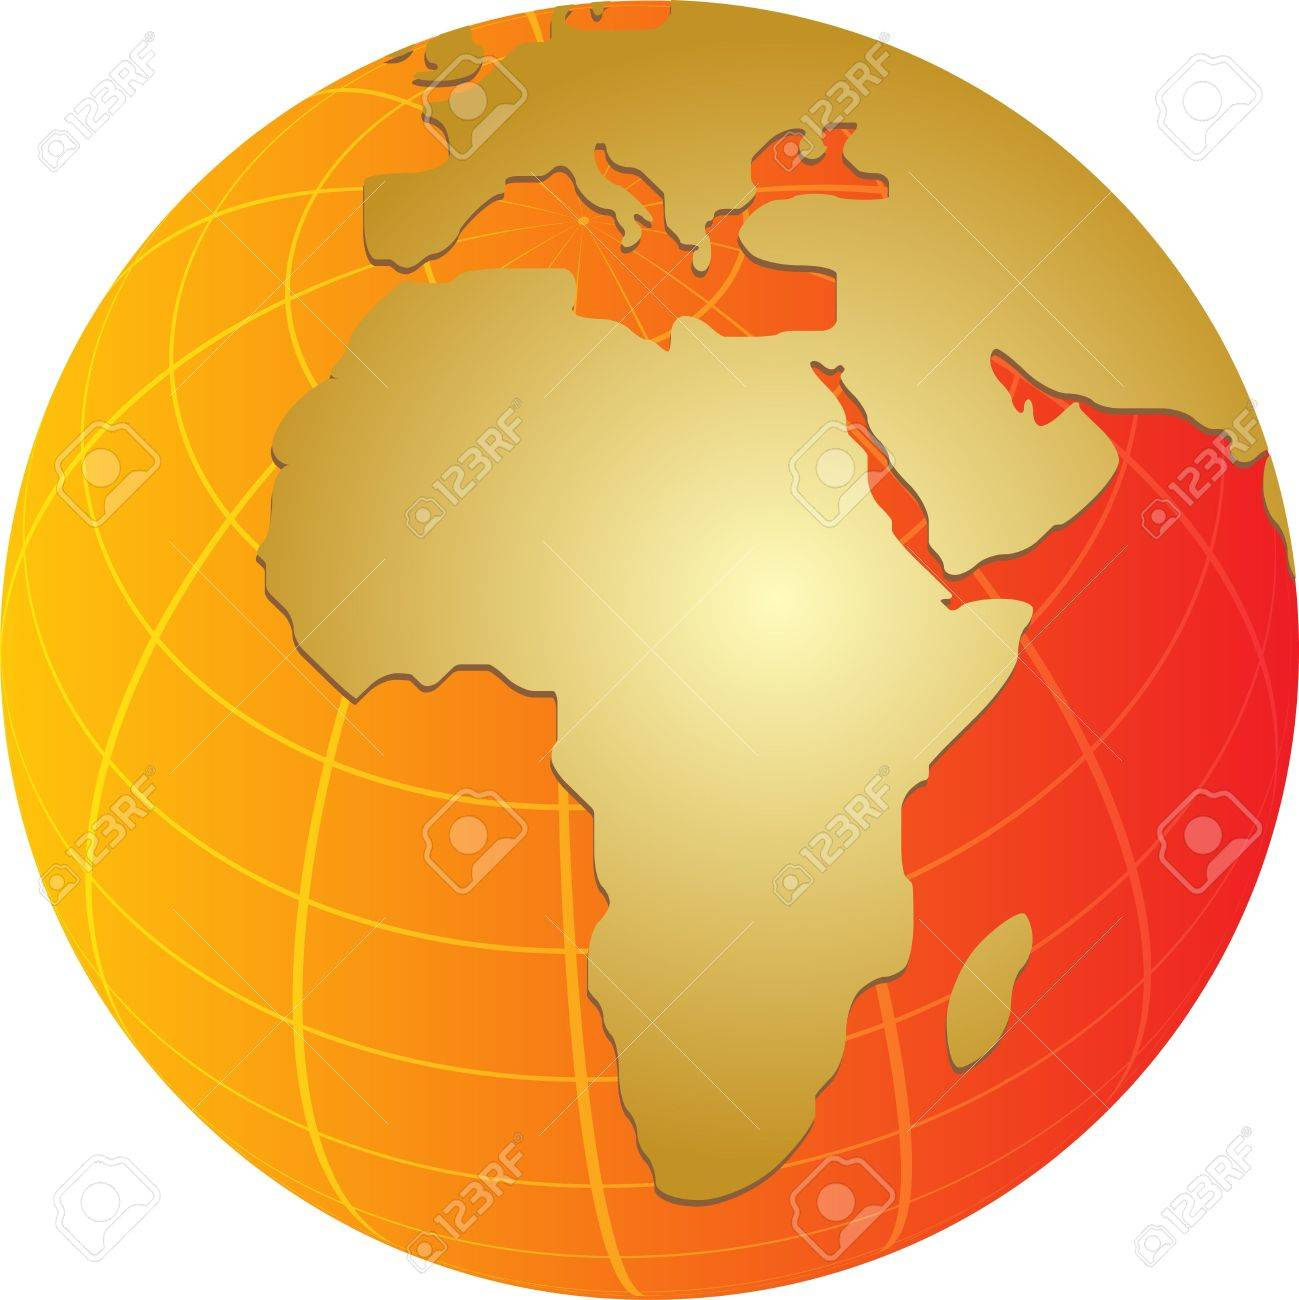 globe map illustration of africa middle east continents stock photo